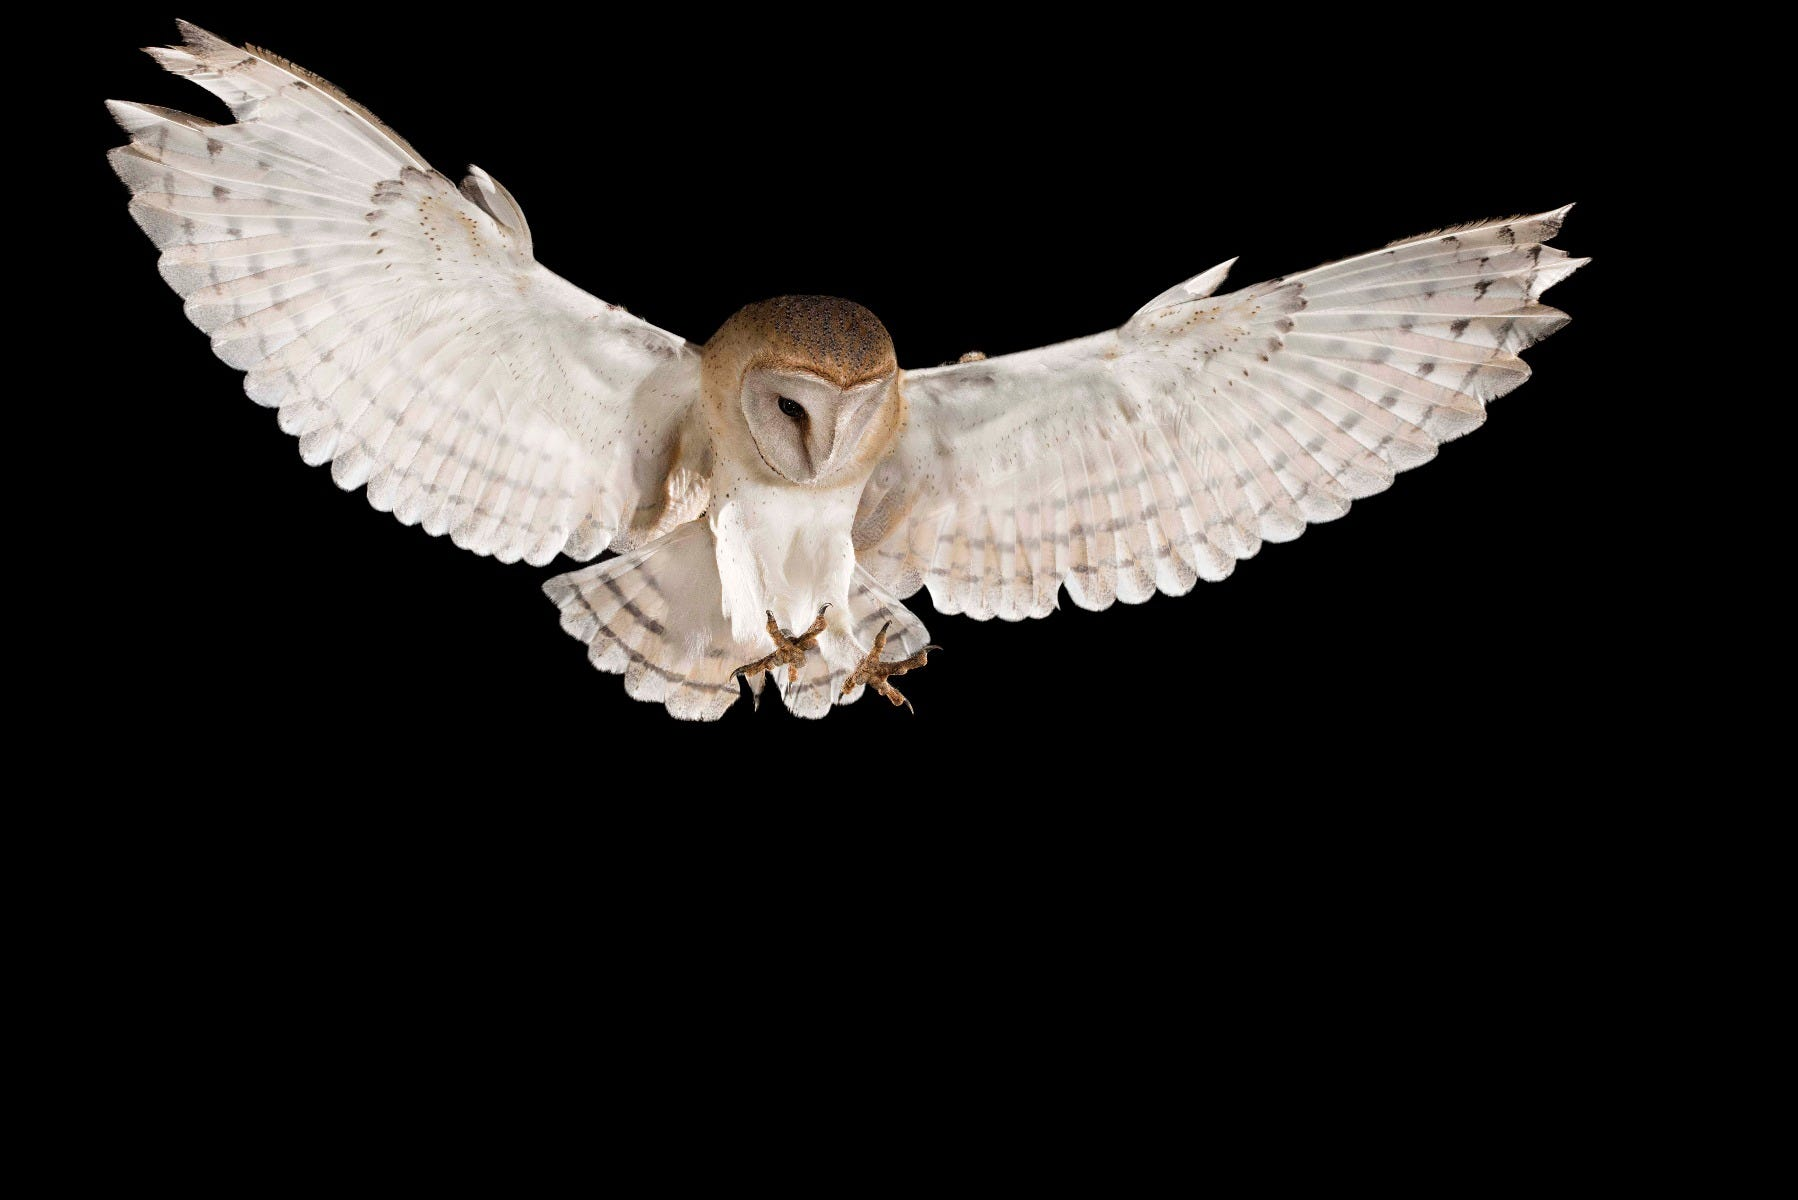 Owl hunting rodents